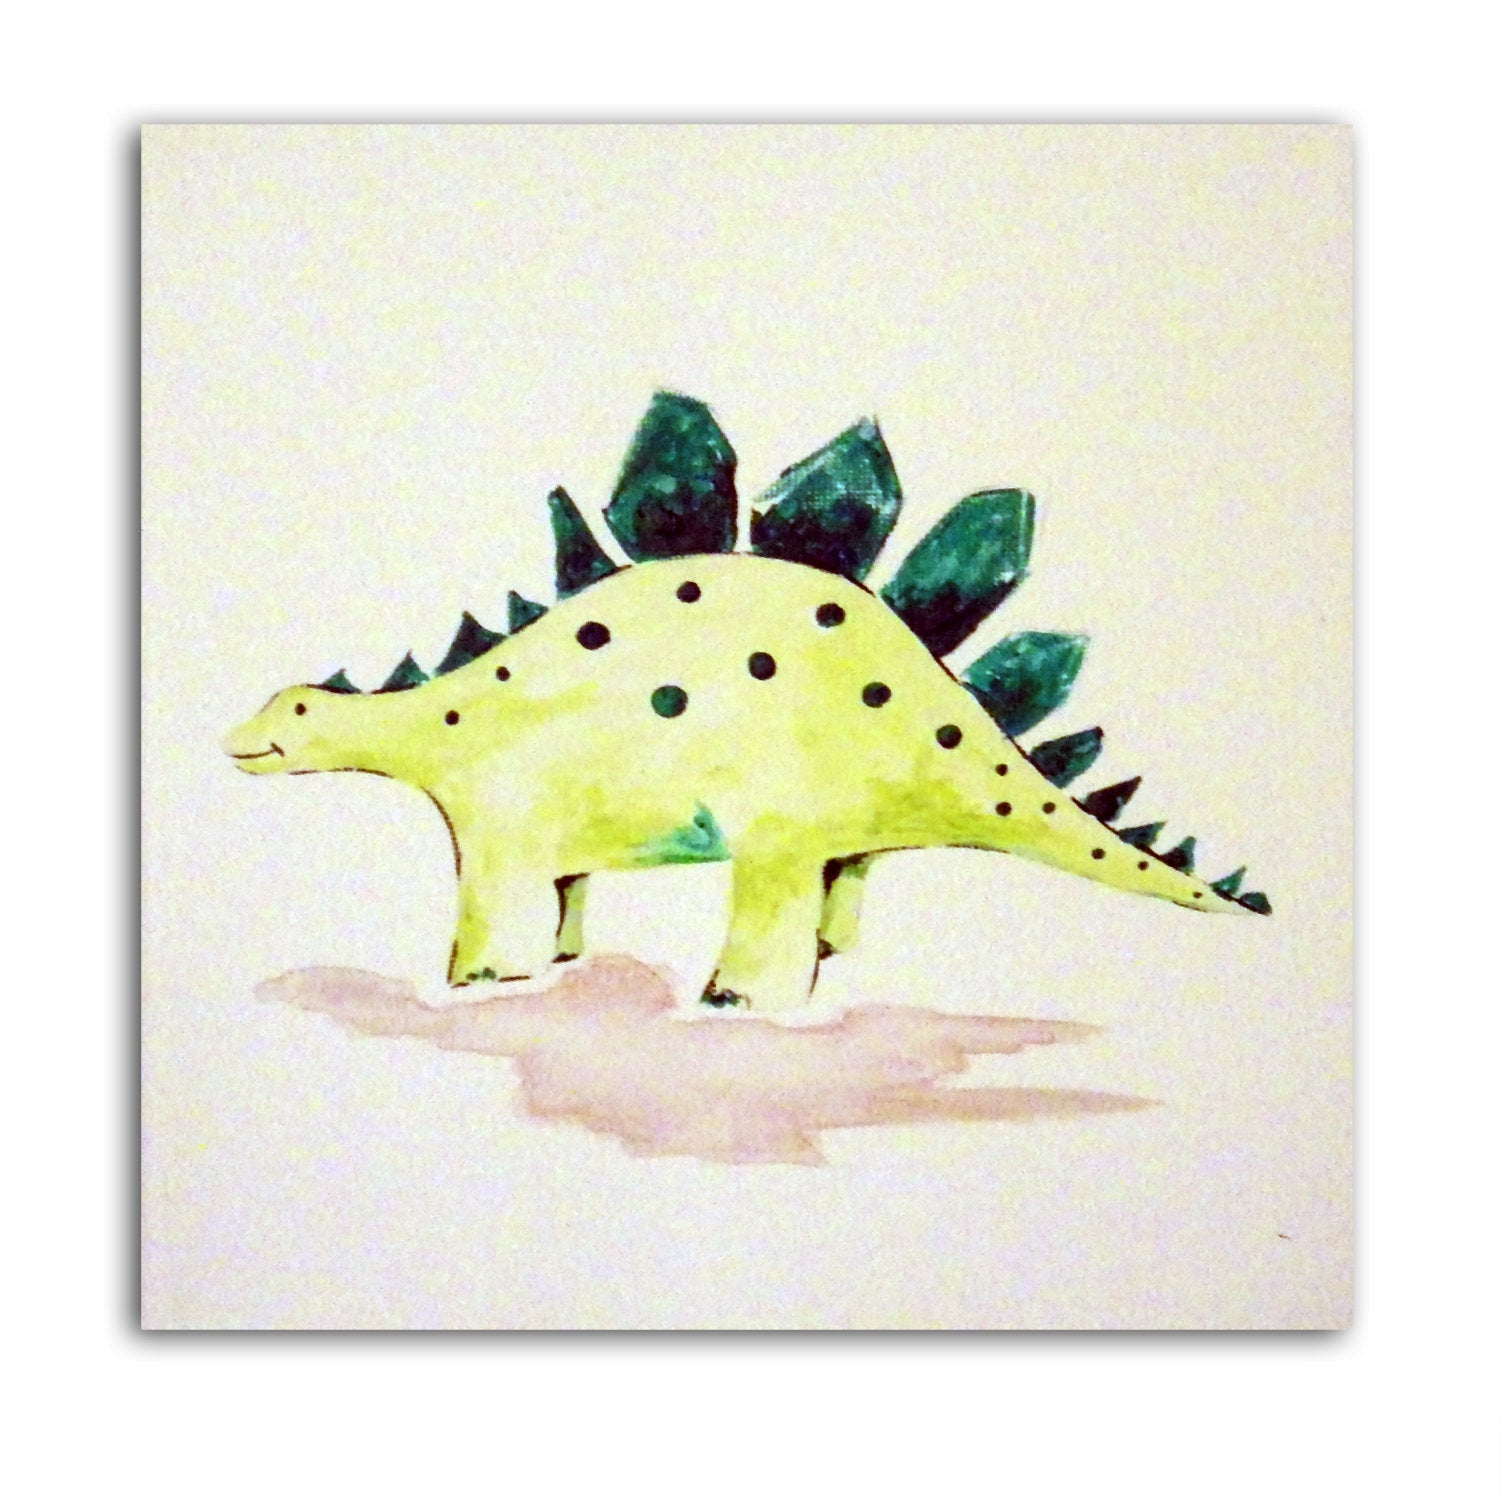 Dinosaur Art - Stegosaurus, Painting on Canvas, Boys Nursery Decor, Dinosaur Wall Decor, Gift for Boys, Dinosaur Gift